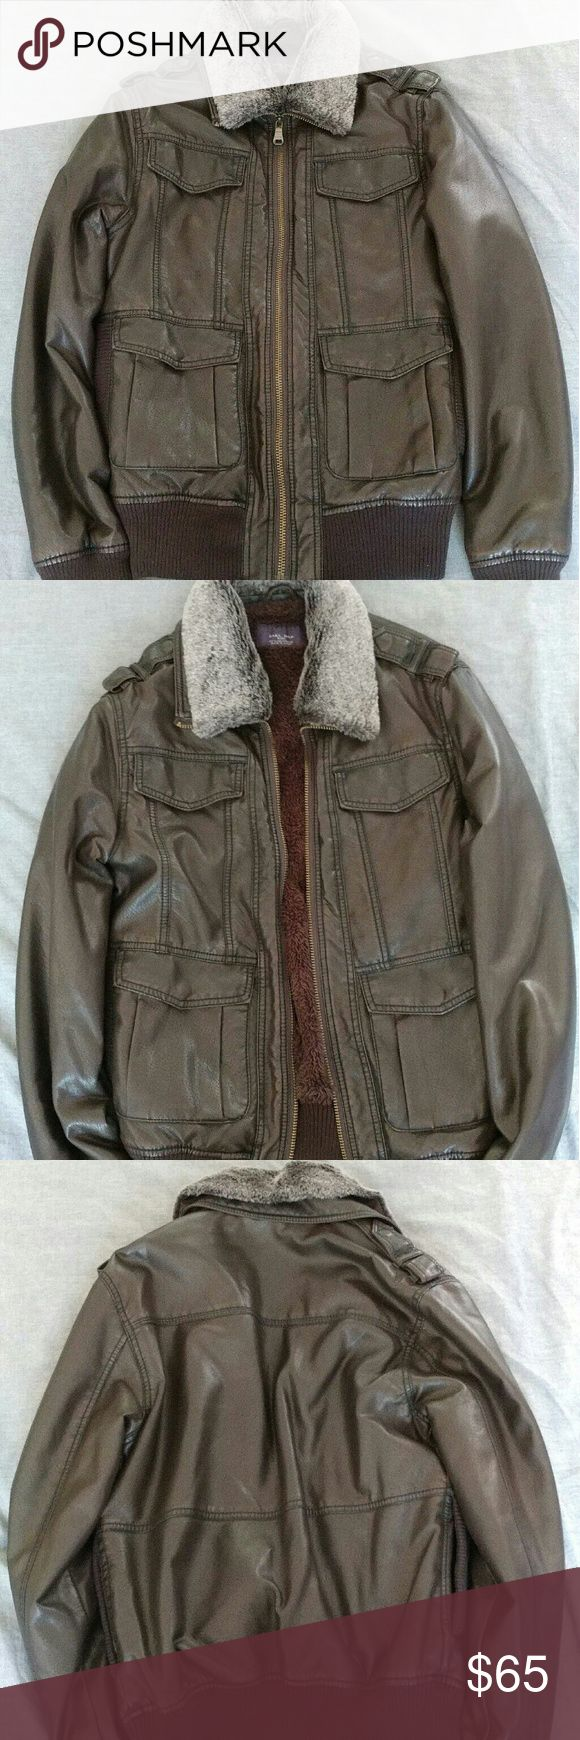 Mens Zara Bomber Jacket Awesome jacket in size S. Great dressed up or down. A classic piece that never goes out of style. Not worn more than 3 times maybe. zara men Jackets & Coats Bomber & Varsity